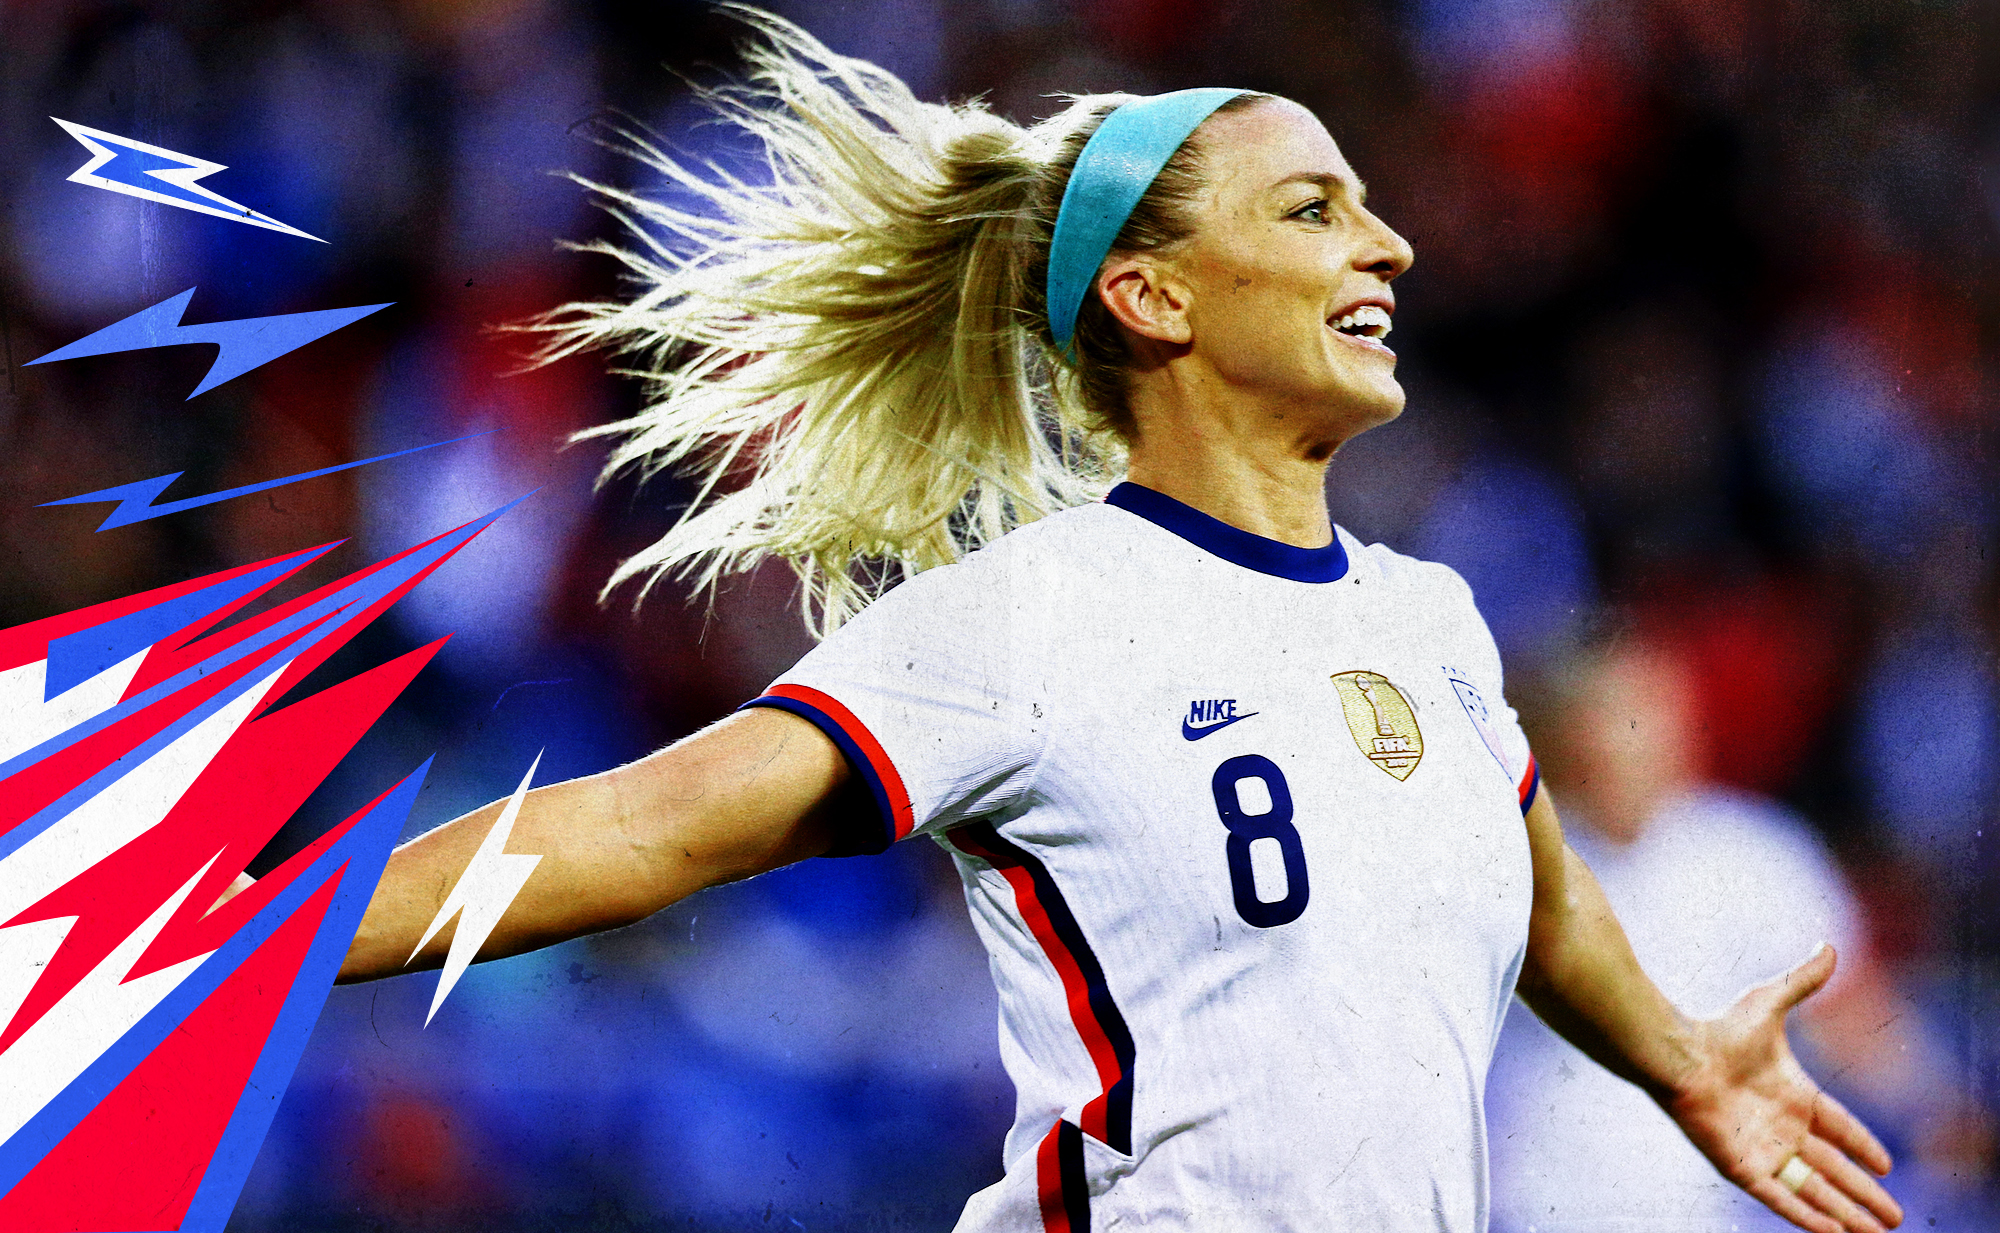 Julie Ertz celebrating her goal against Spain by running with her arms outstretched, her hair flowing behind her.